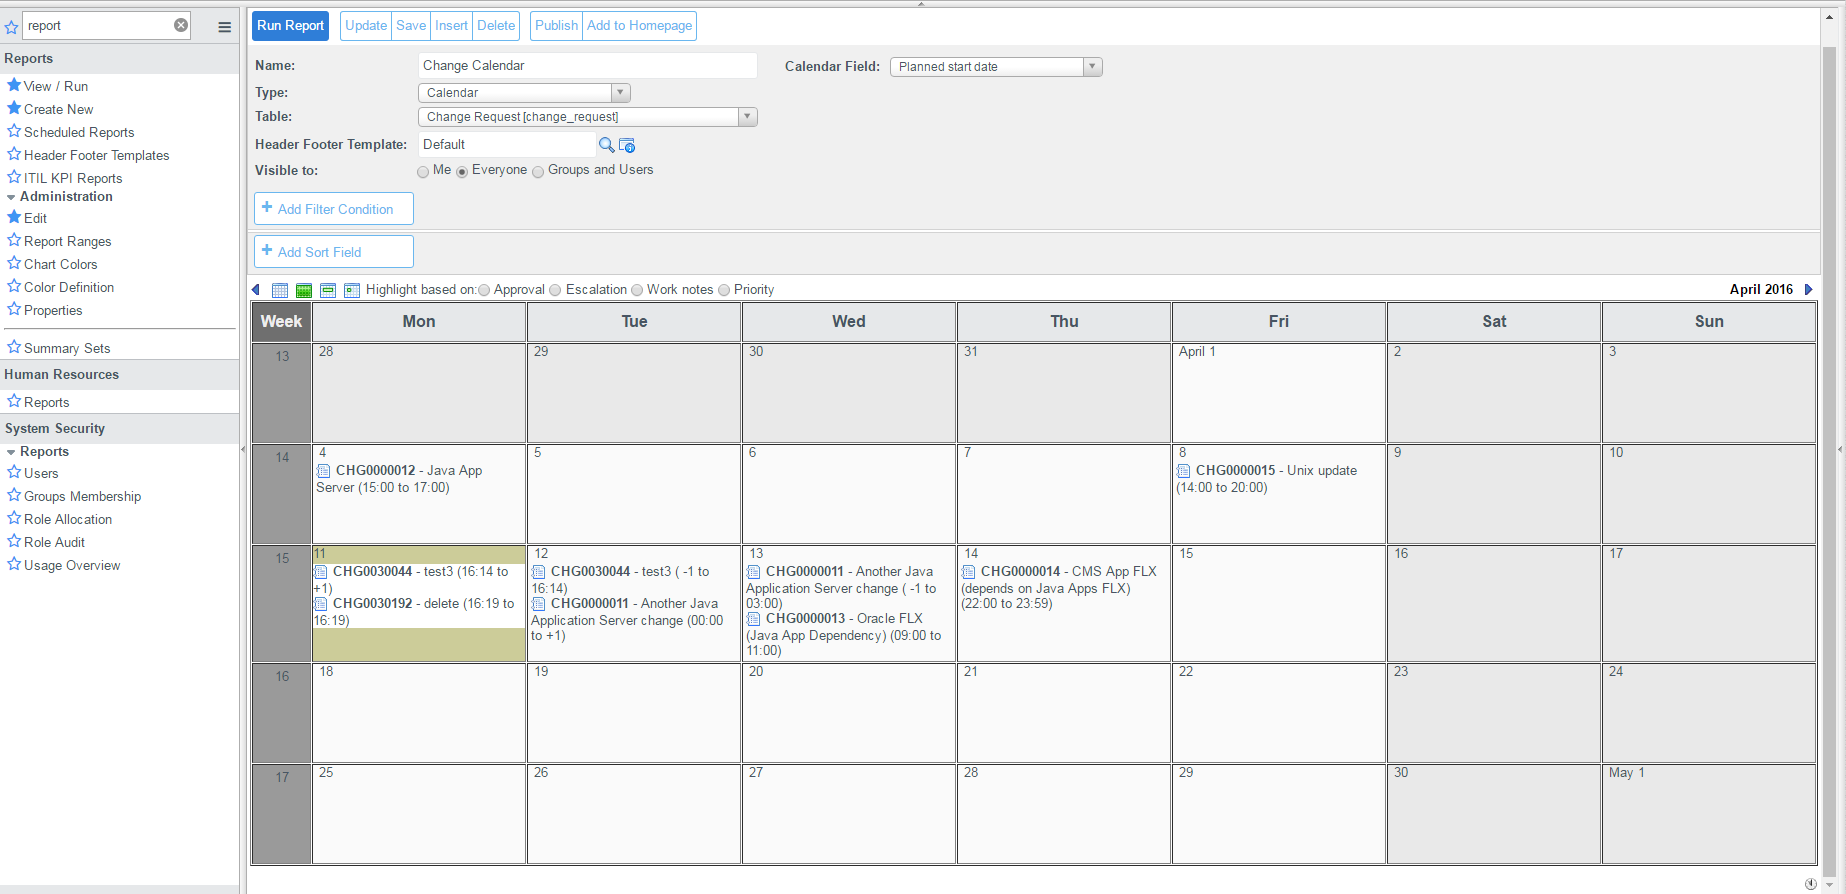 Is there a way to view change calendar in outlook? - IT Service Management  - ServiceNow Community